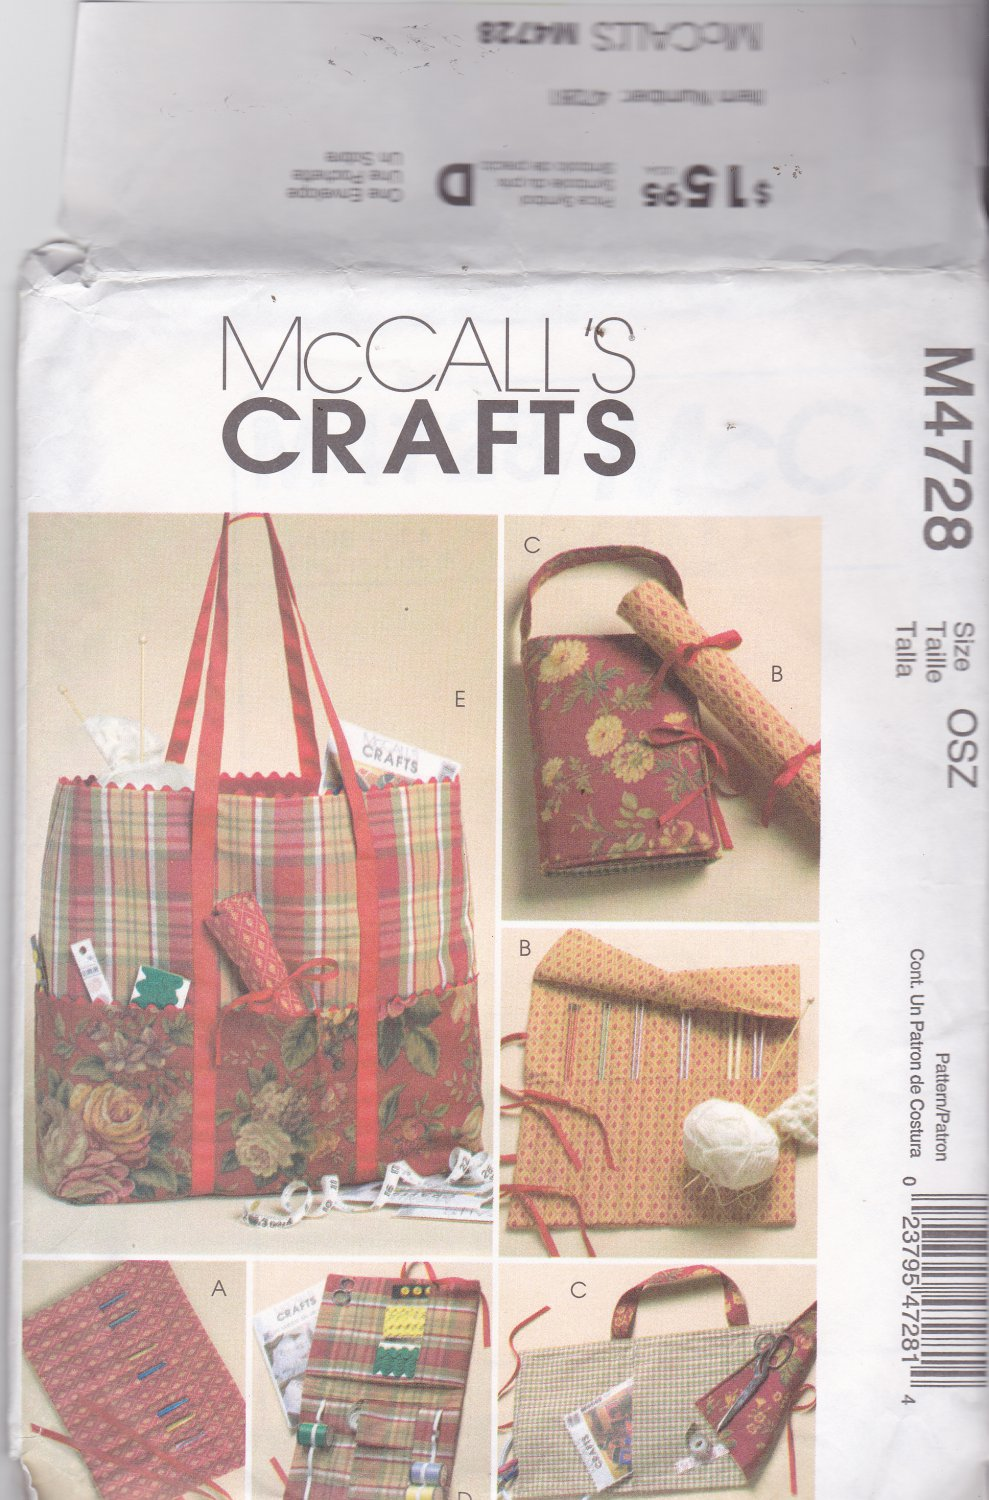 McCall's Crafts M4728 4728 Sewing Knitting Craft Organizer Bags Uncut FF